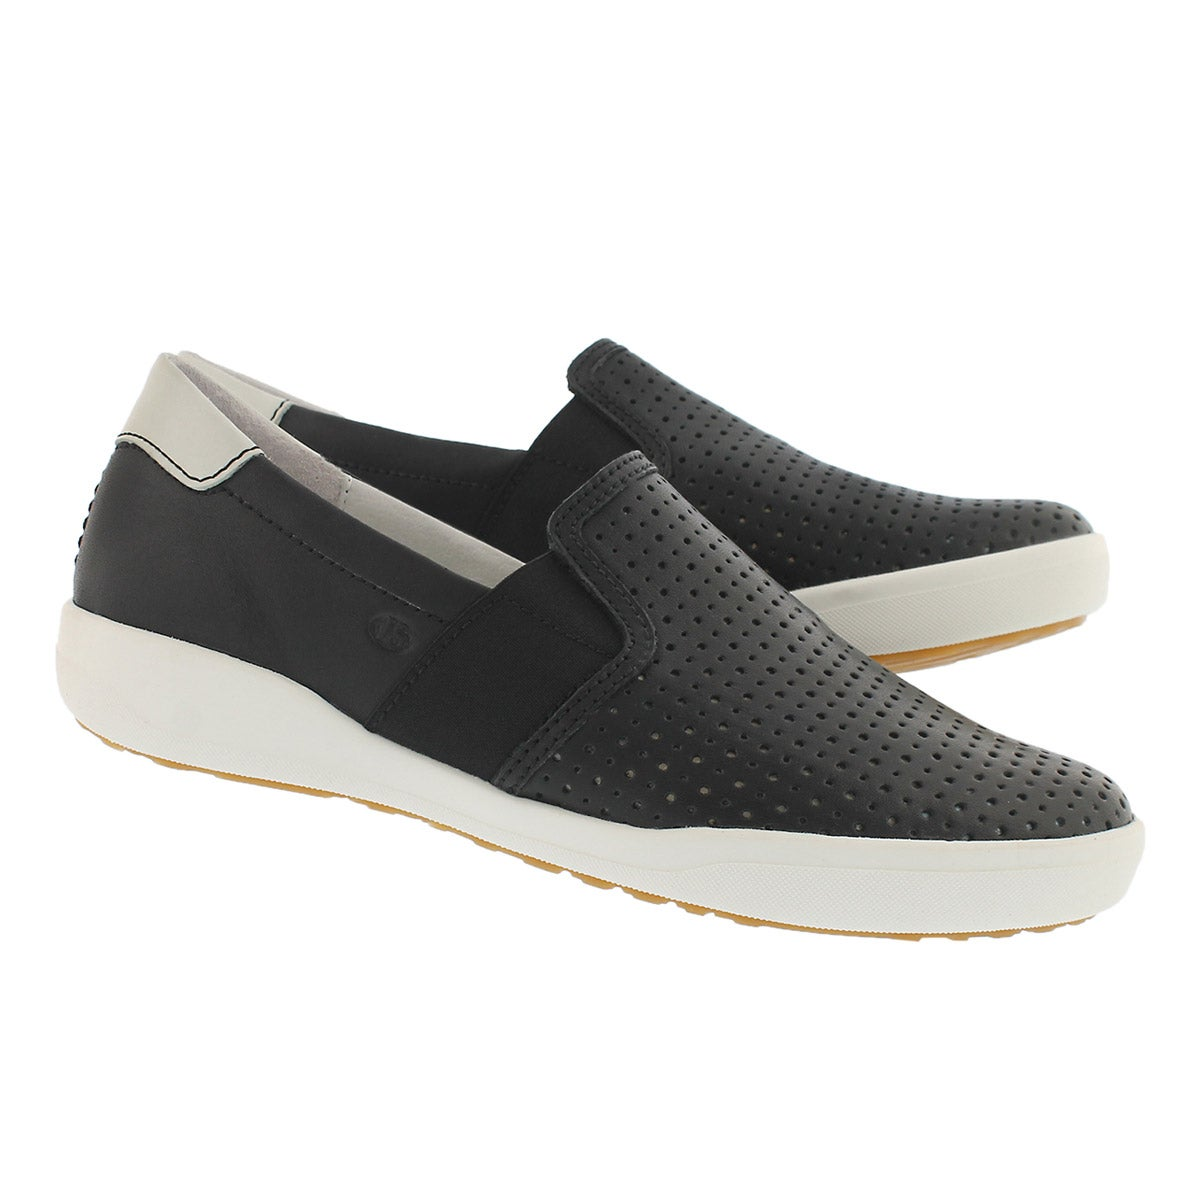 Lds Sina 15 black casual slip on shoe